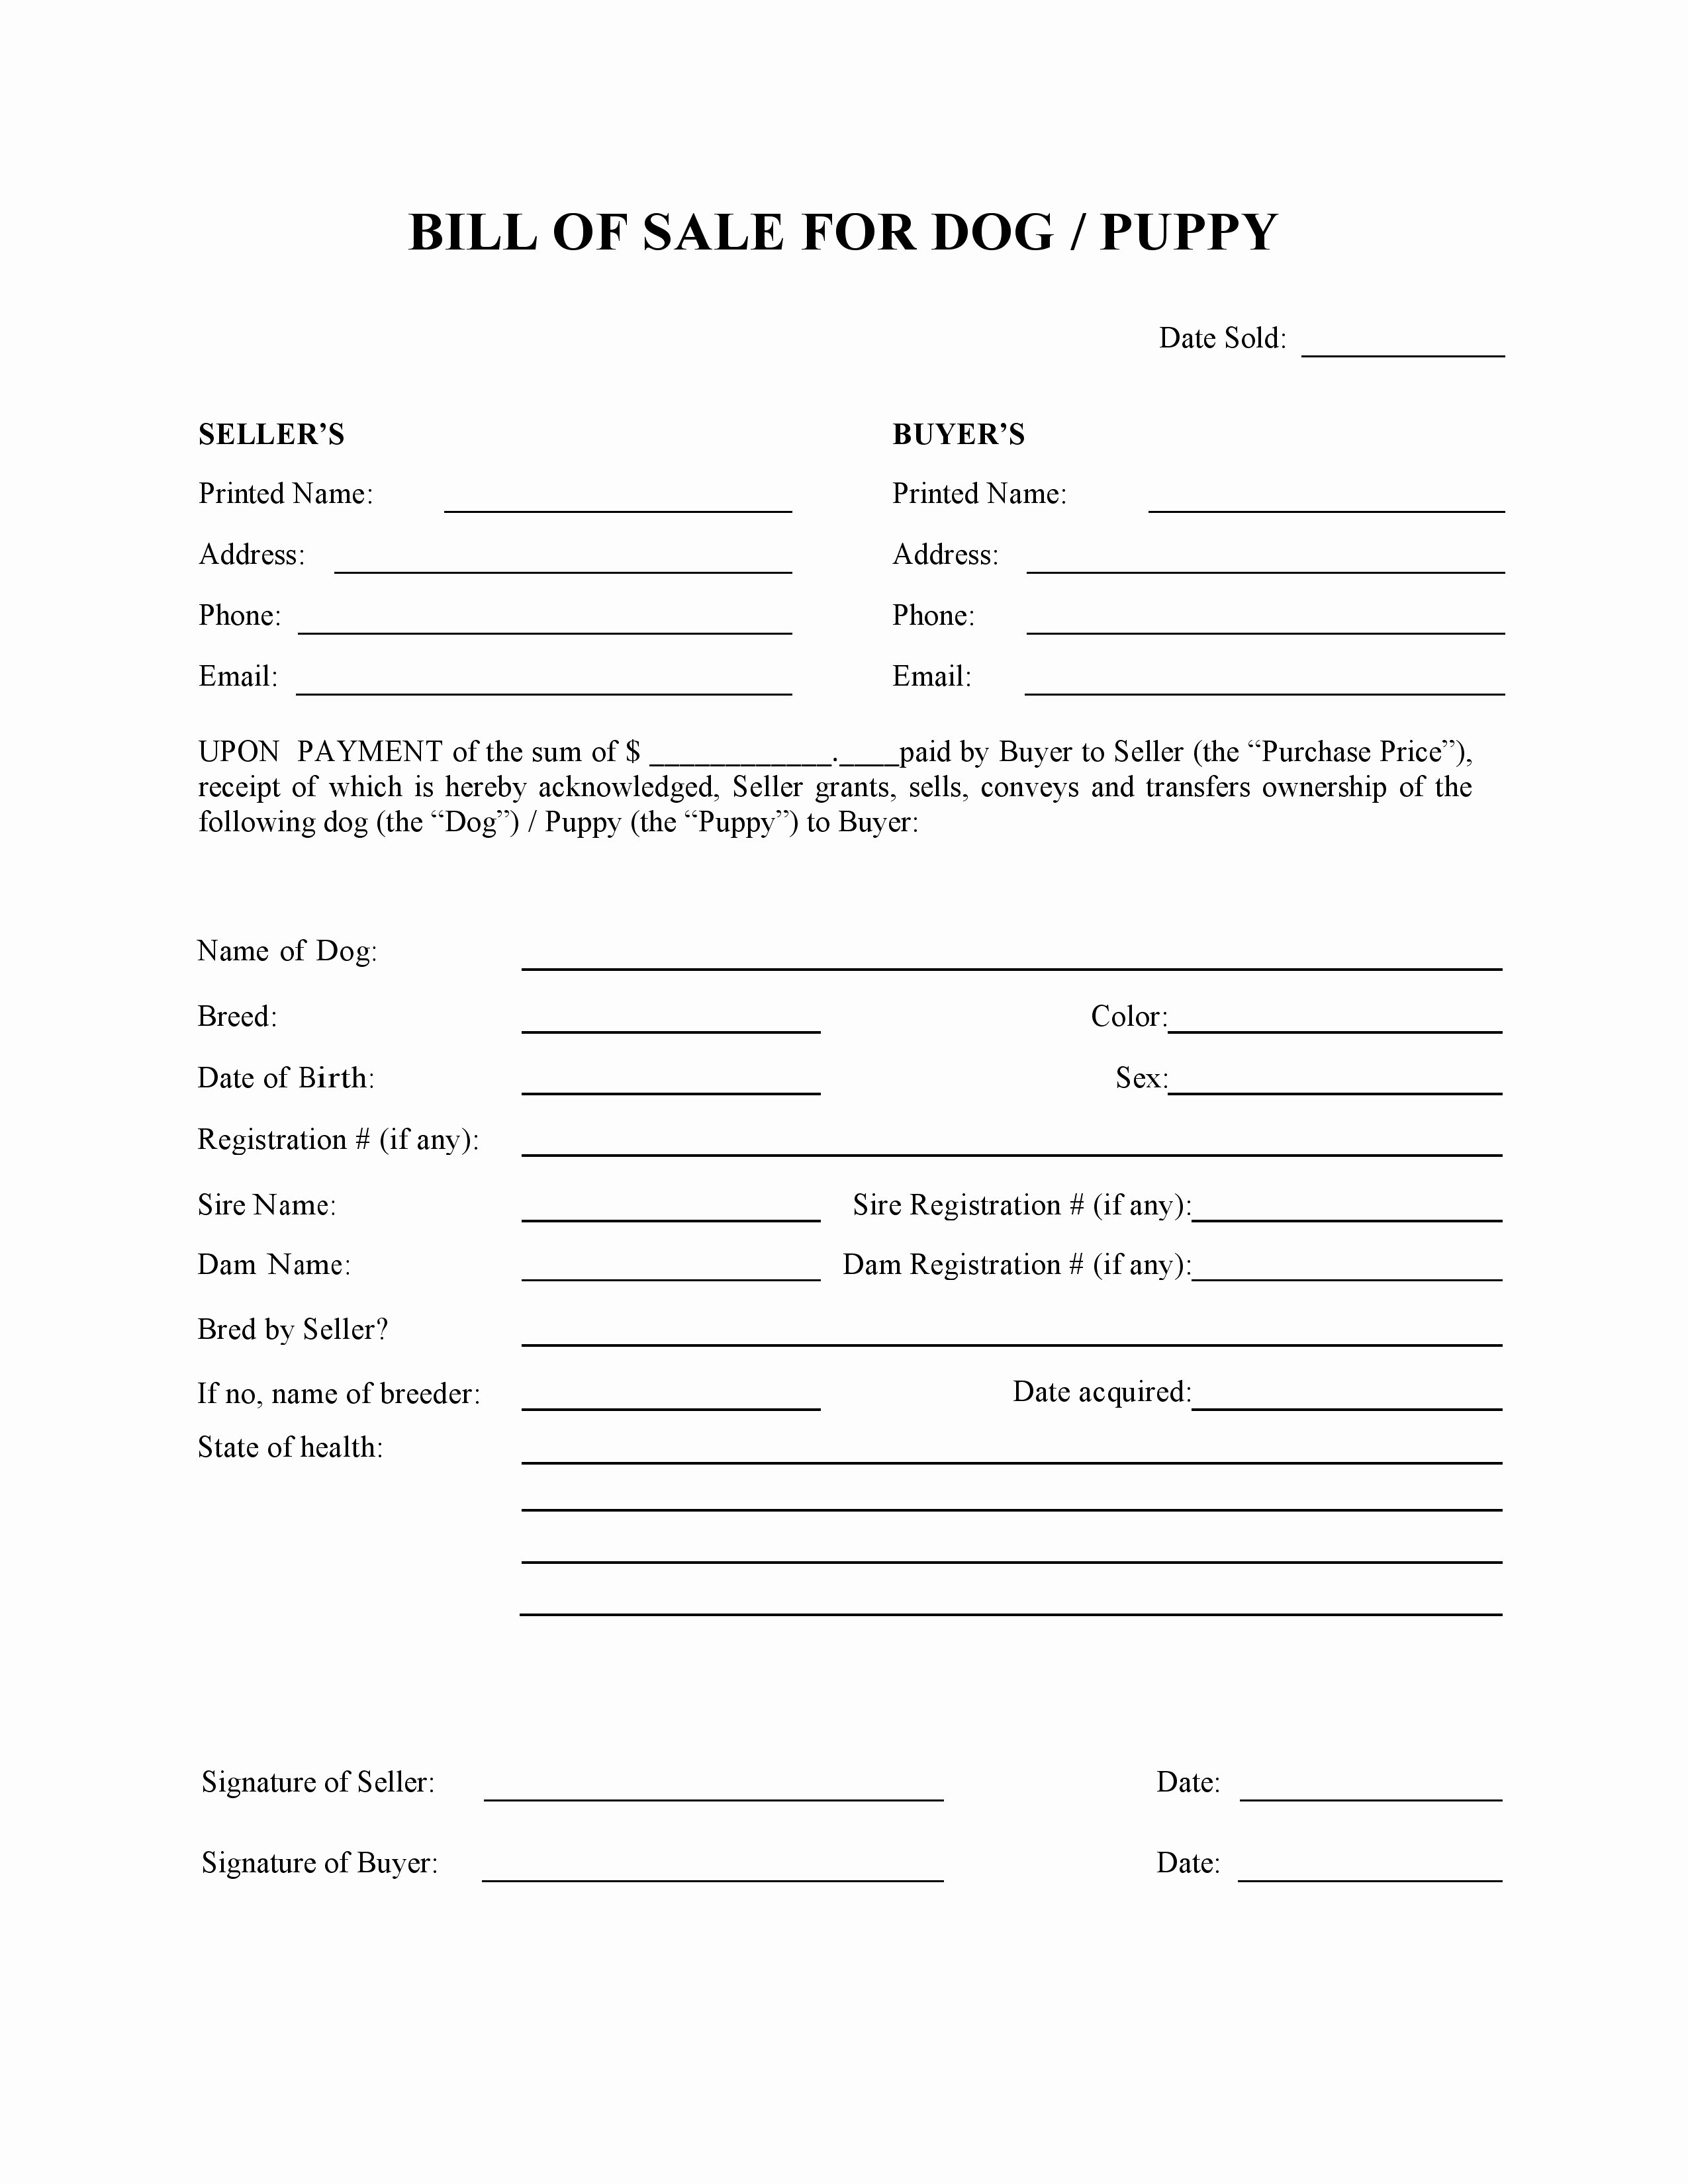 Free Dog or Puppy Bill Of Sale form Pdf Word